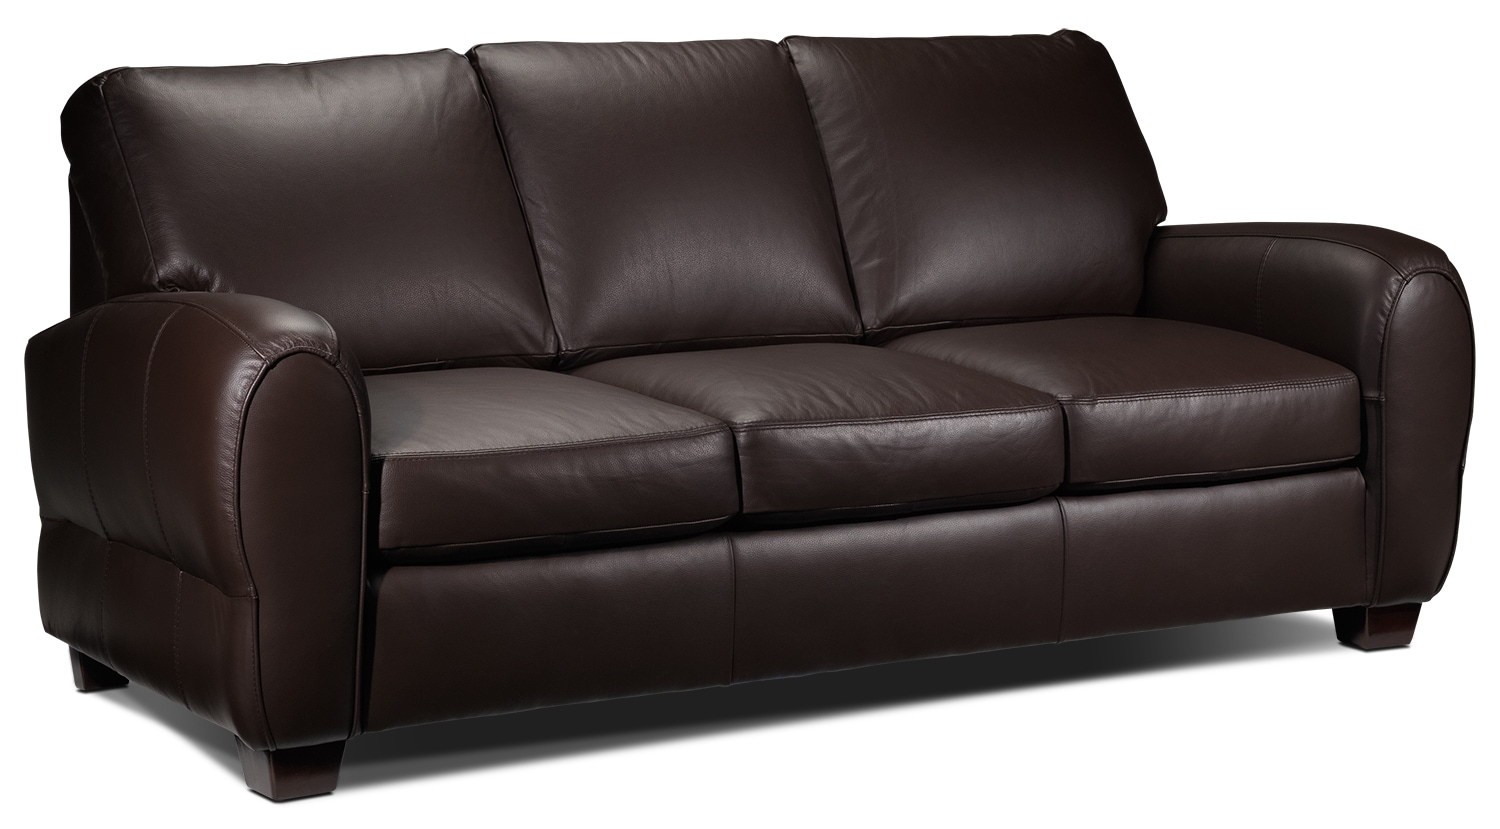 Sheldon Sofa